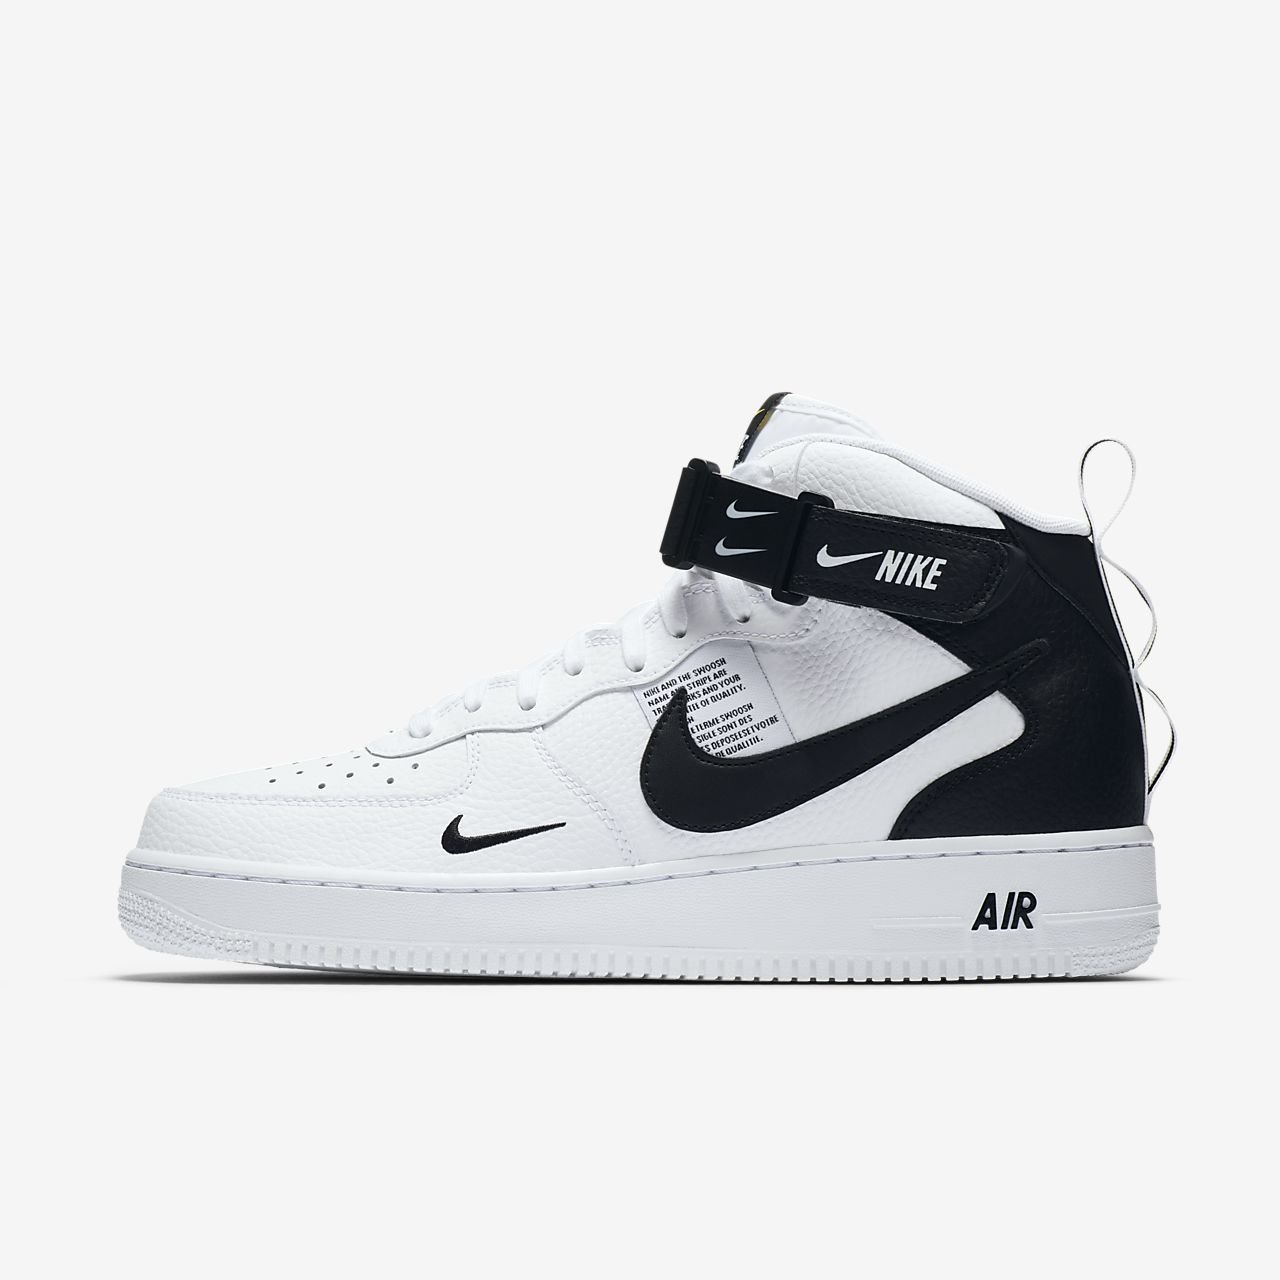 bde7e95b980b Nike Air Force 1 07 Mid LV8 Men s Shoe. Nike.com AU